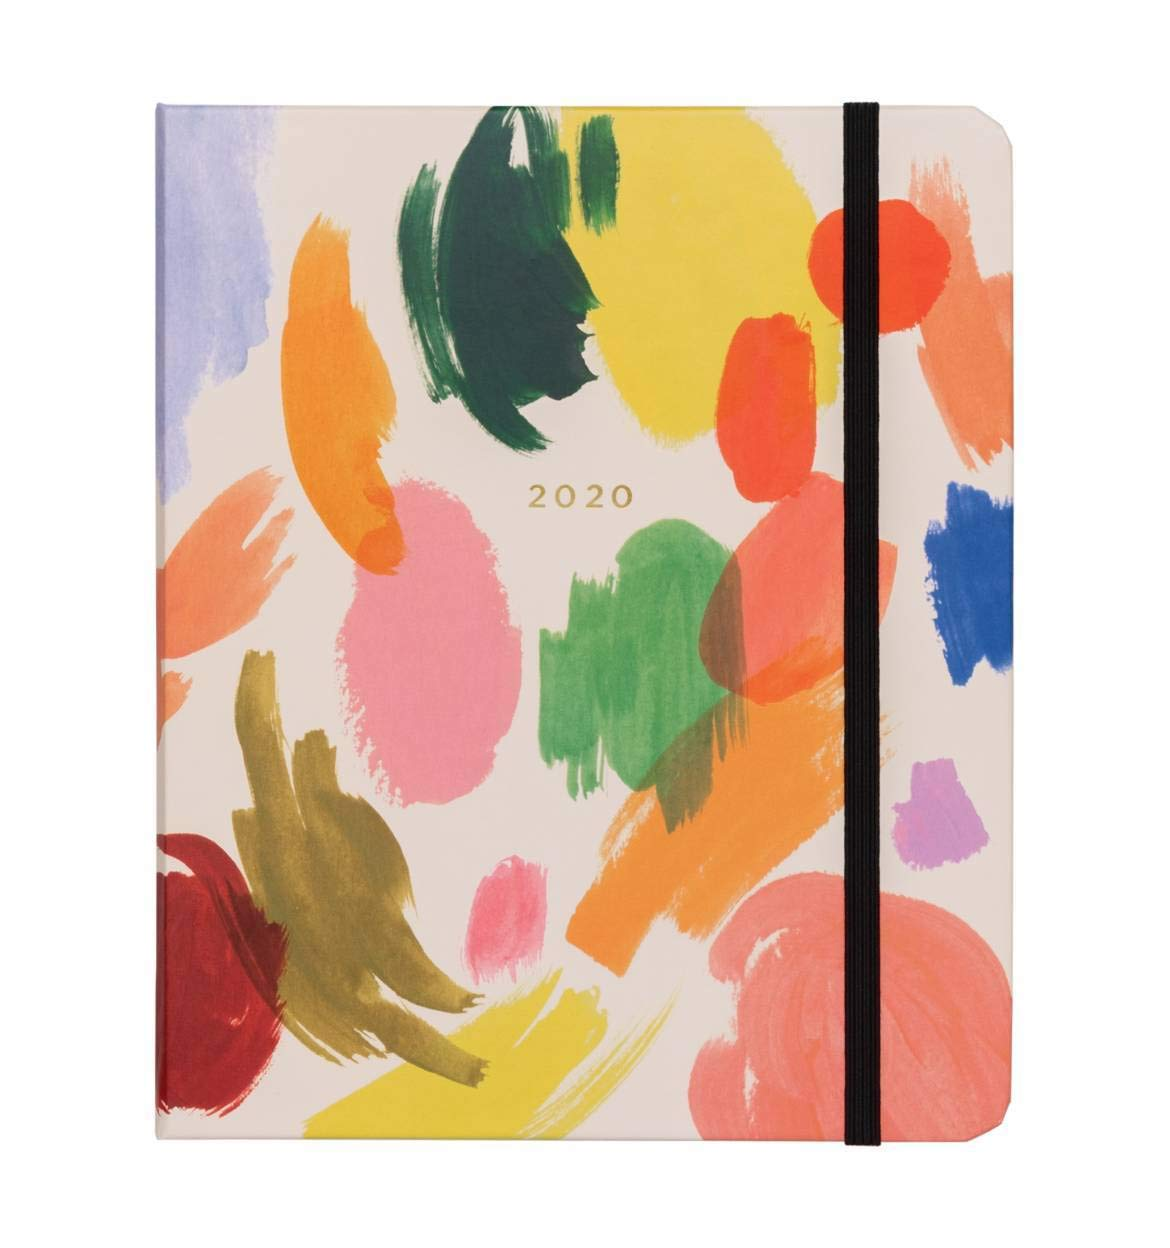 2020 Palette Covered Spiral Planner by Rifle Paper Co.